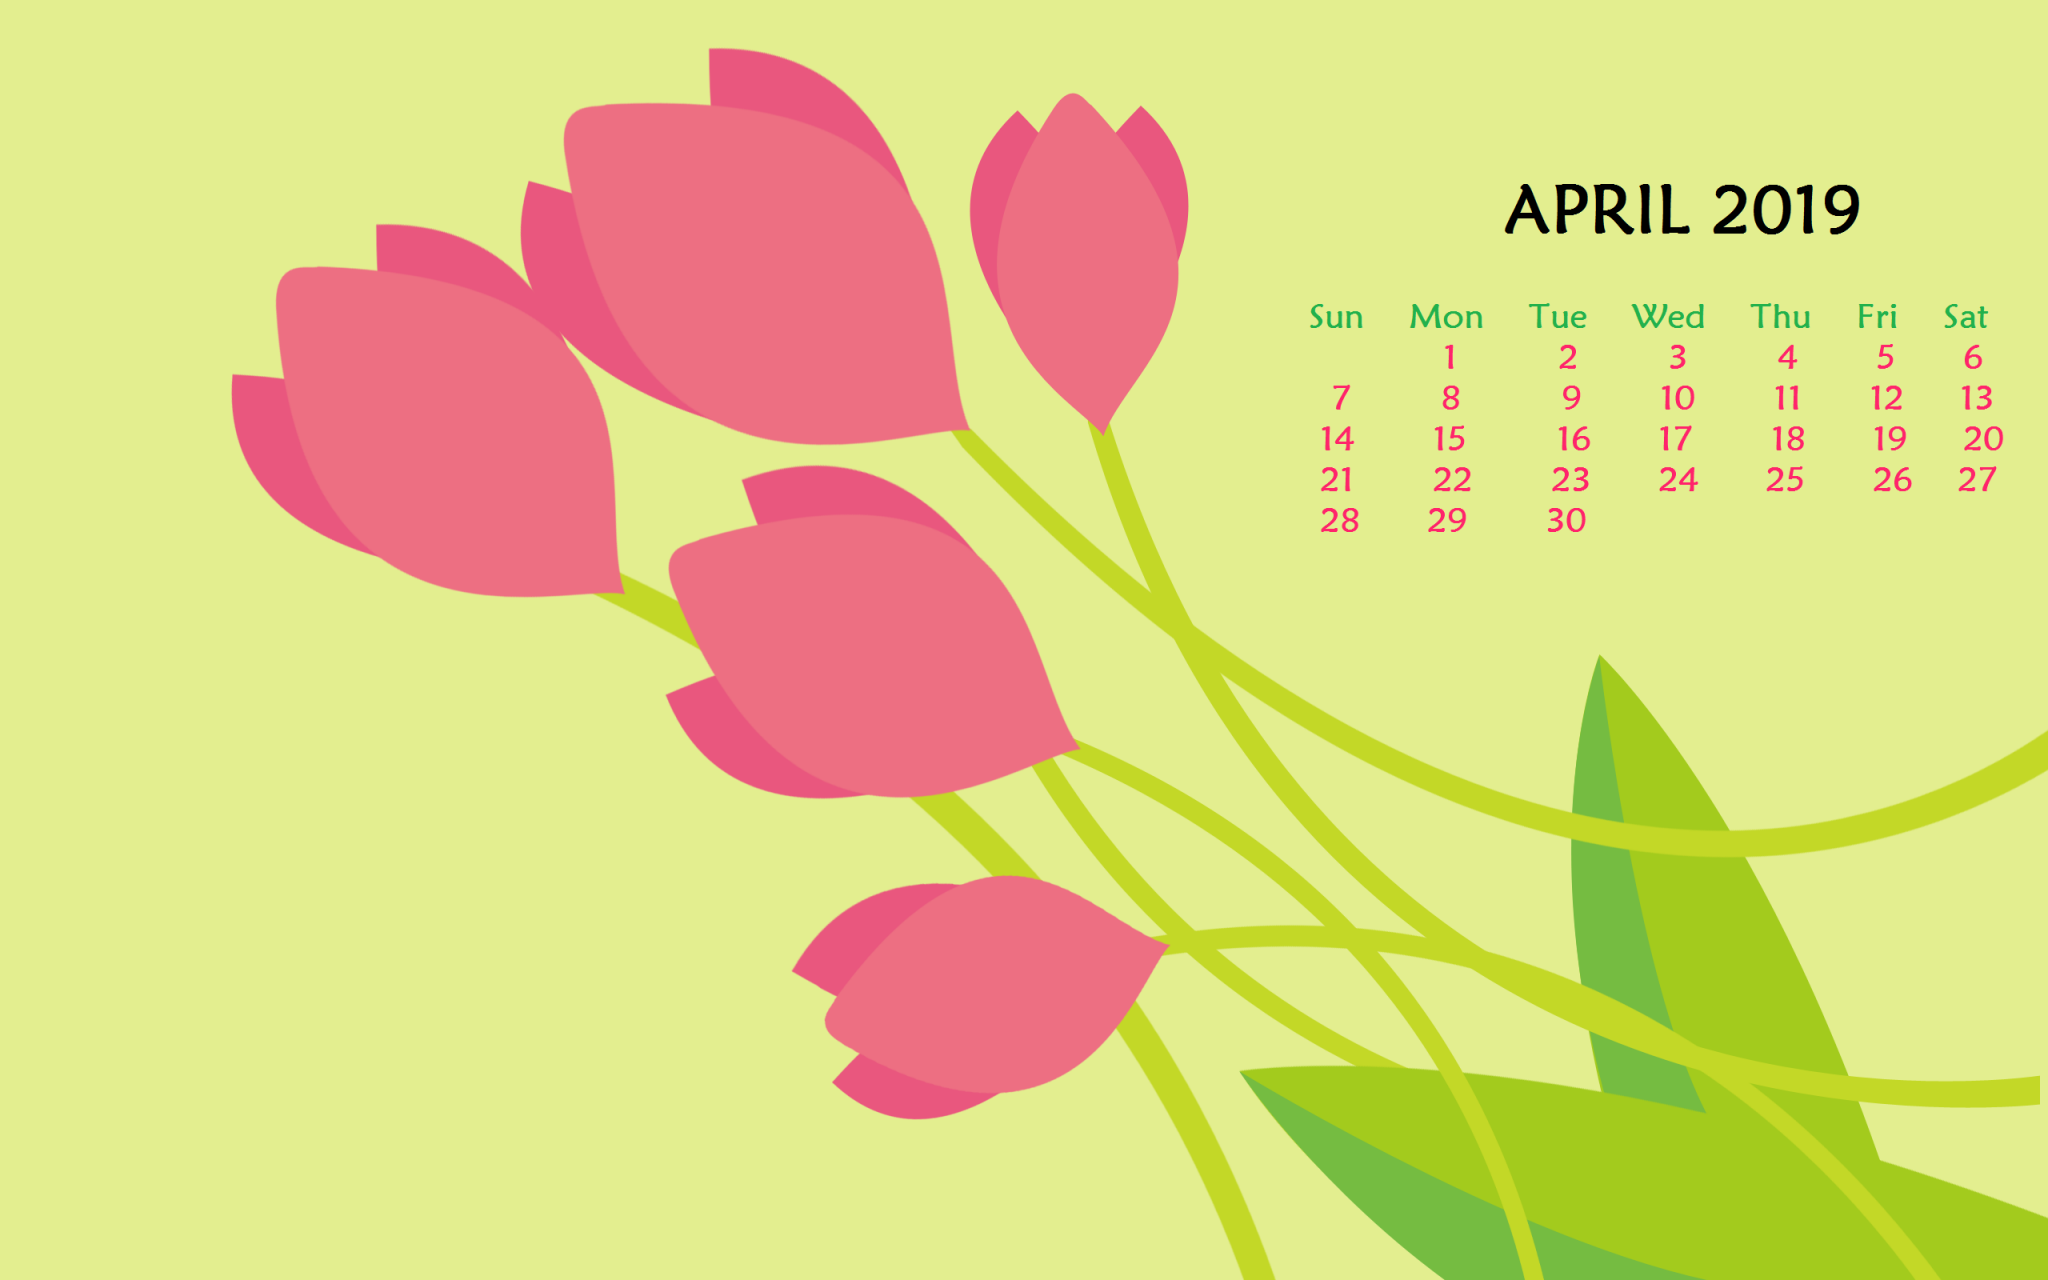 Floral Desktop April 2019 Calendar Wallpaper